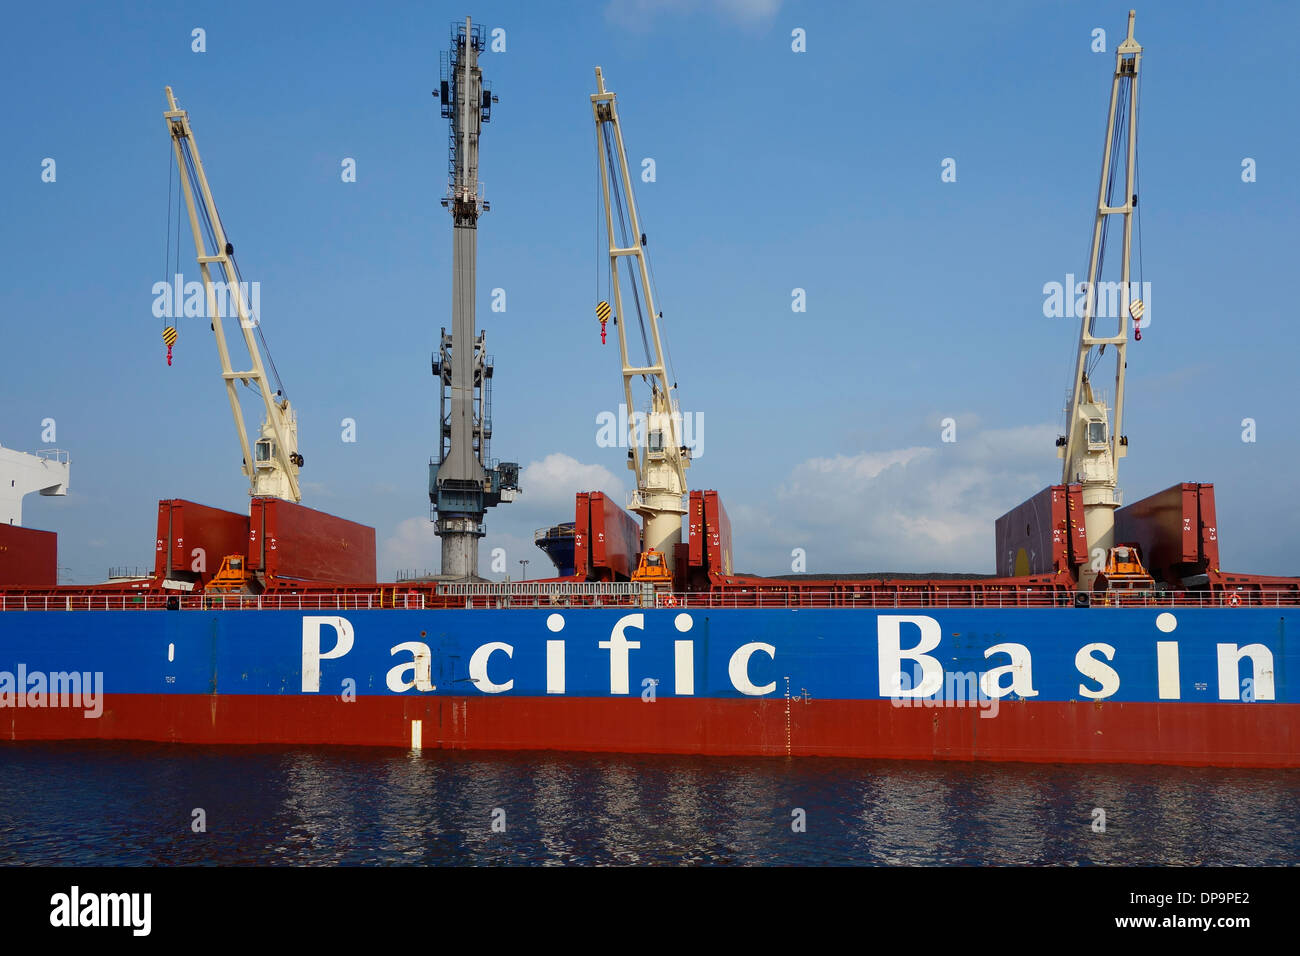 Pacific Basin bulk carrier docked at SEA-invest / Ghent Coal Terminal / GCT at the port of Ghent, East Flanders, Belgium - Stock Image